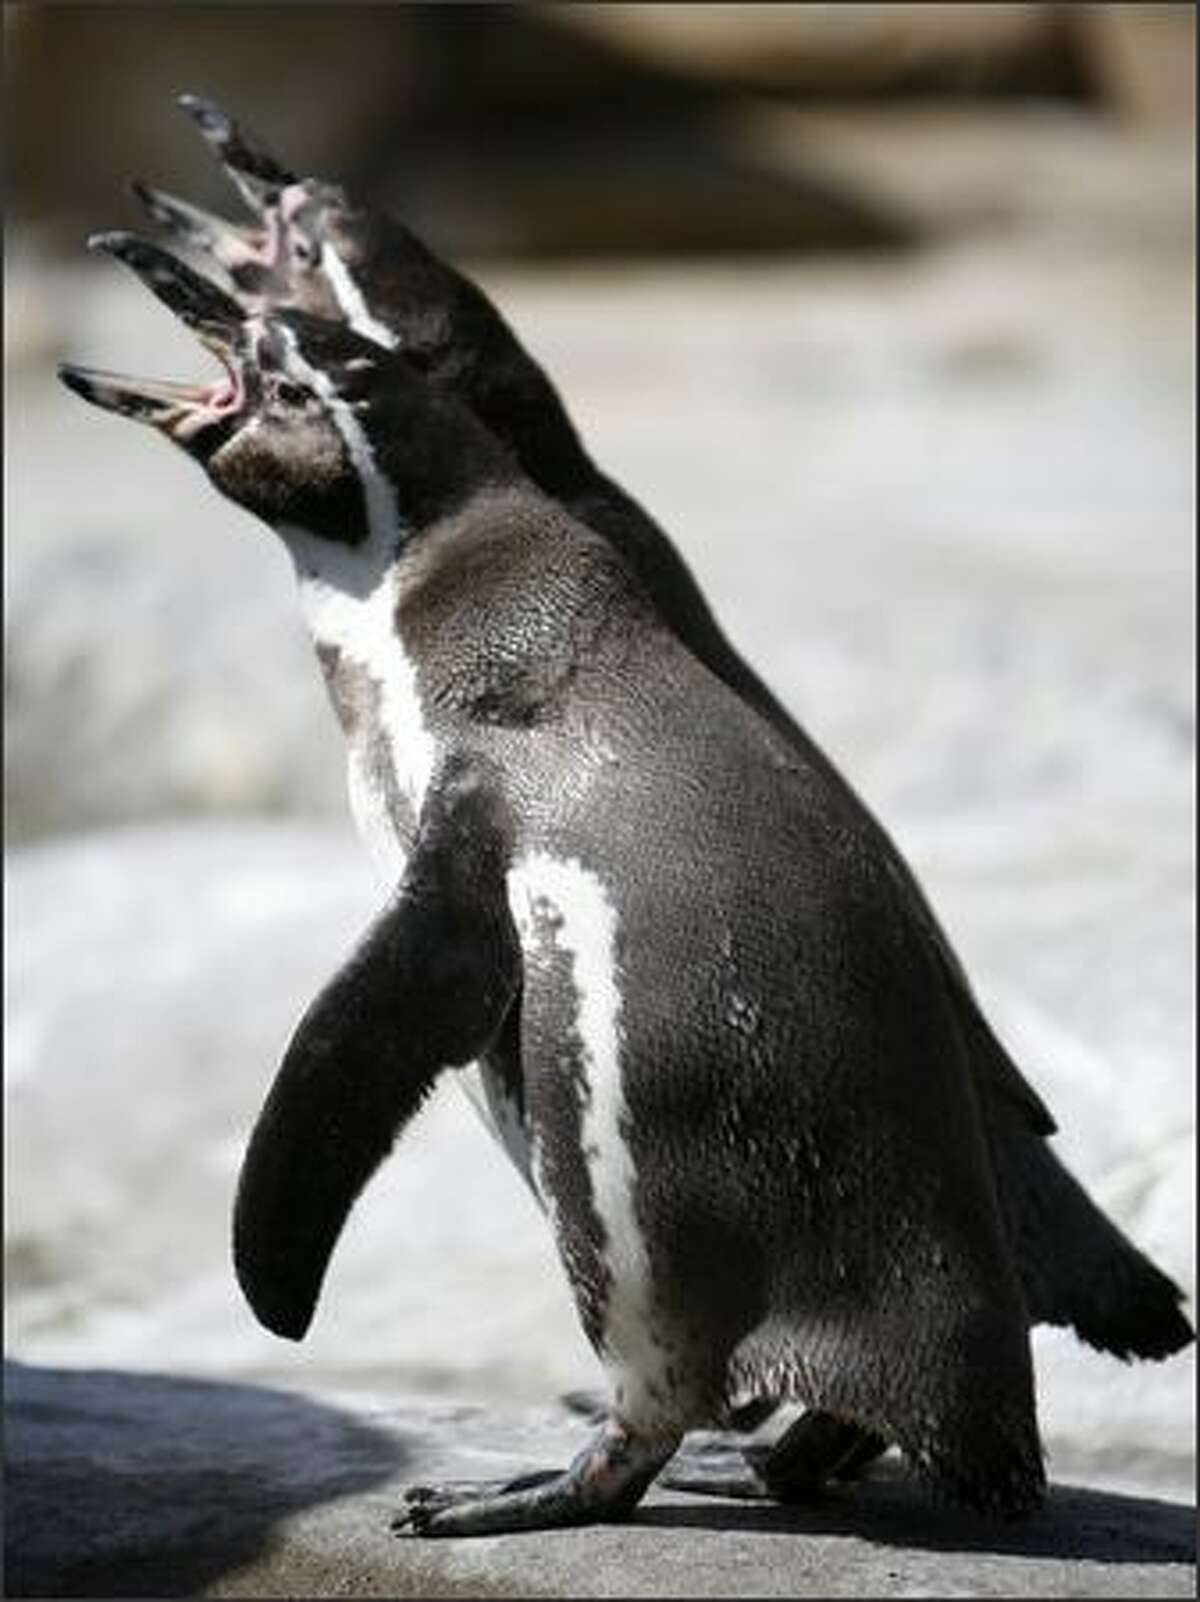 Humboldt penguins make sounds in their new exhibit on Friday at the Woodland Park Zoo in Seattle.